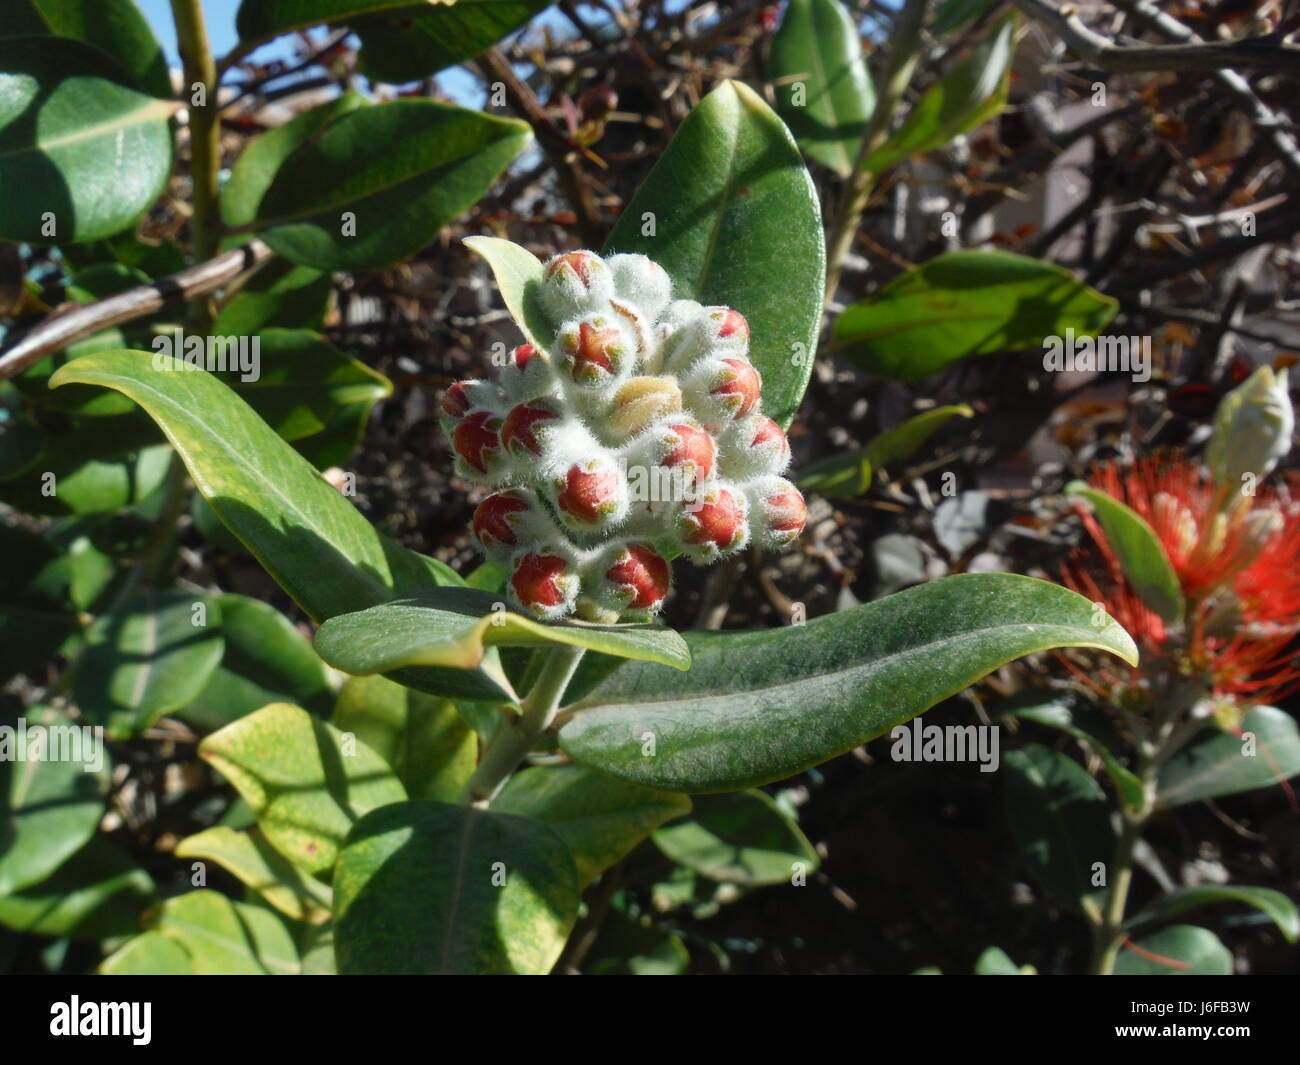 New Zealand Christmas Tree.Pohutukawa New Zealand Christmas Tree Bud Stock Photo